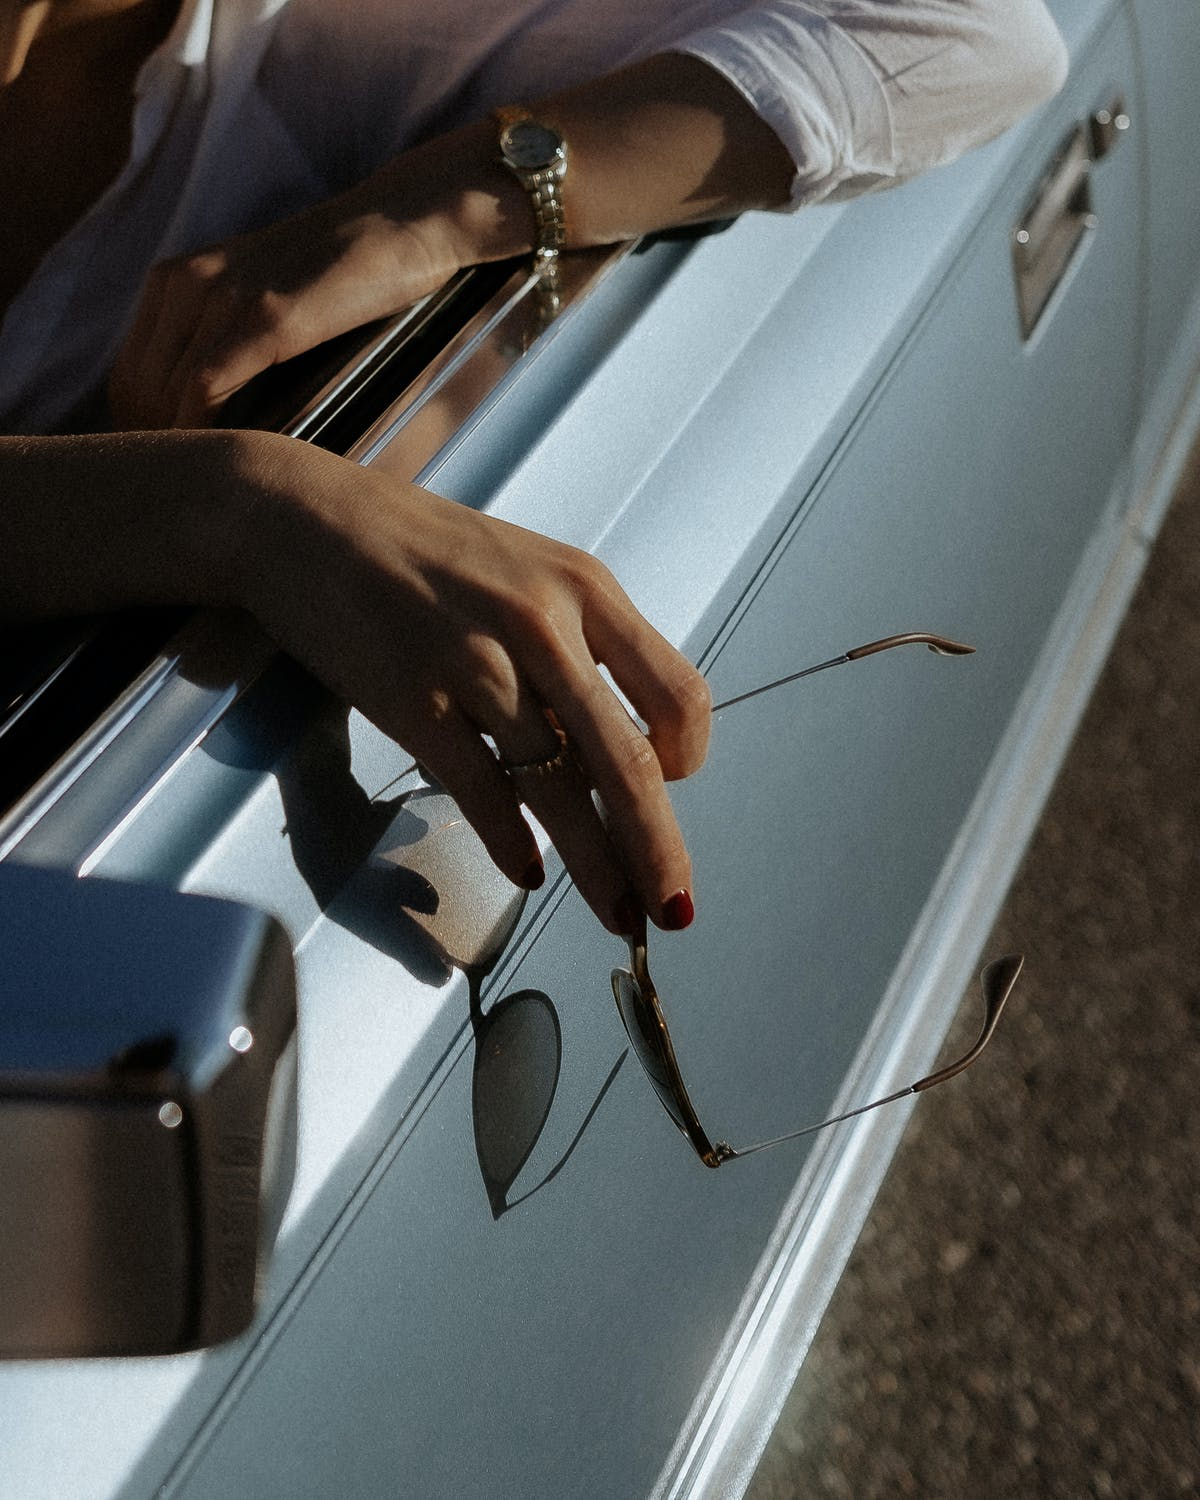 A woman's arms leaning against the window of a fancy car   Source: Pexels